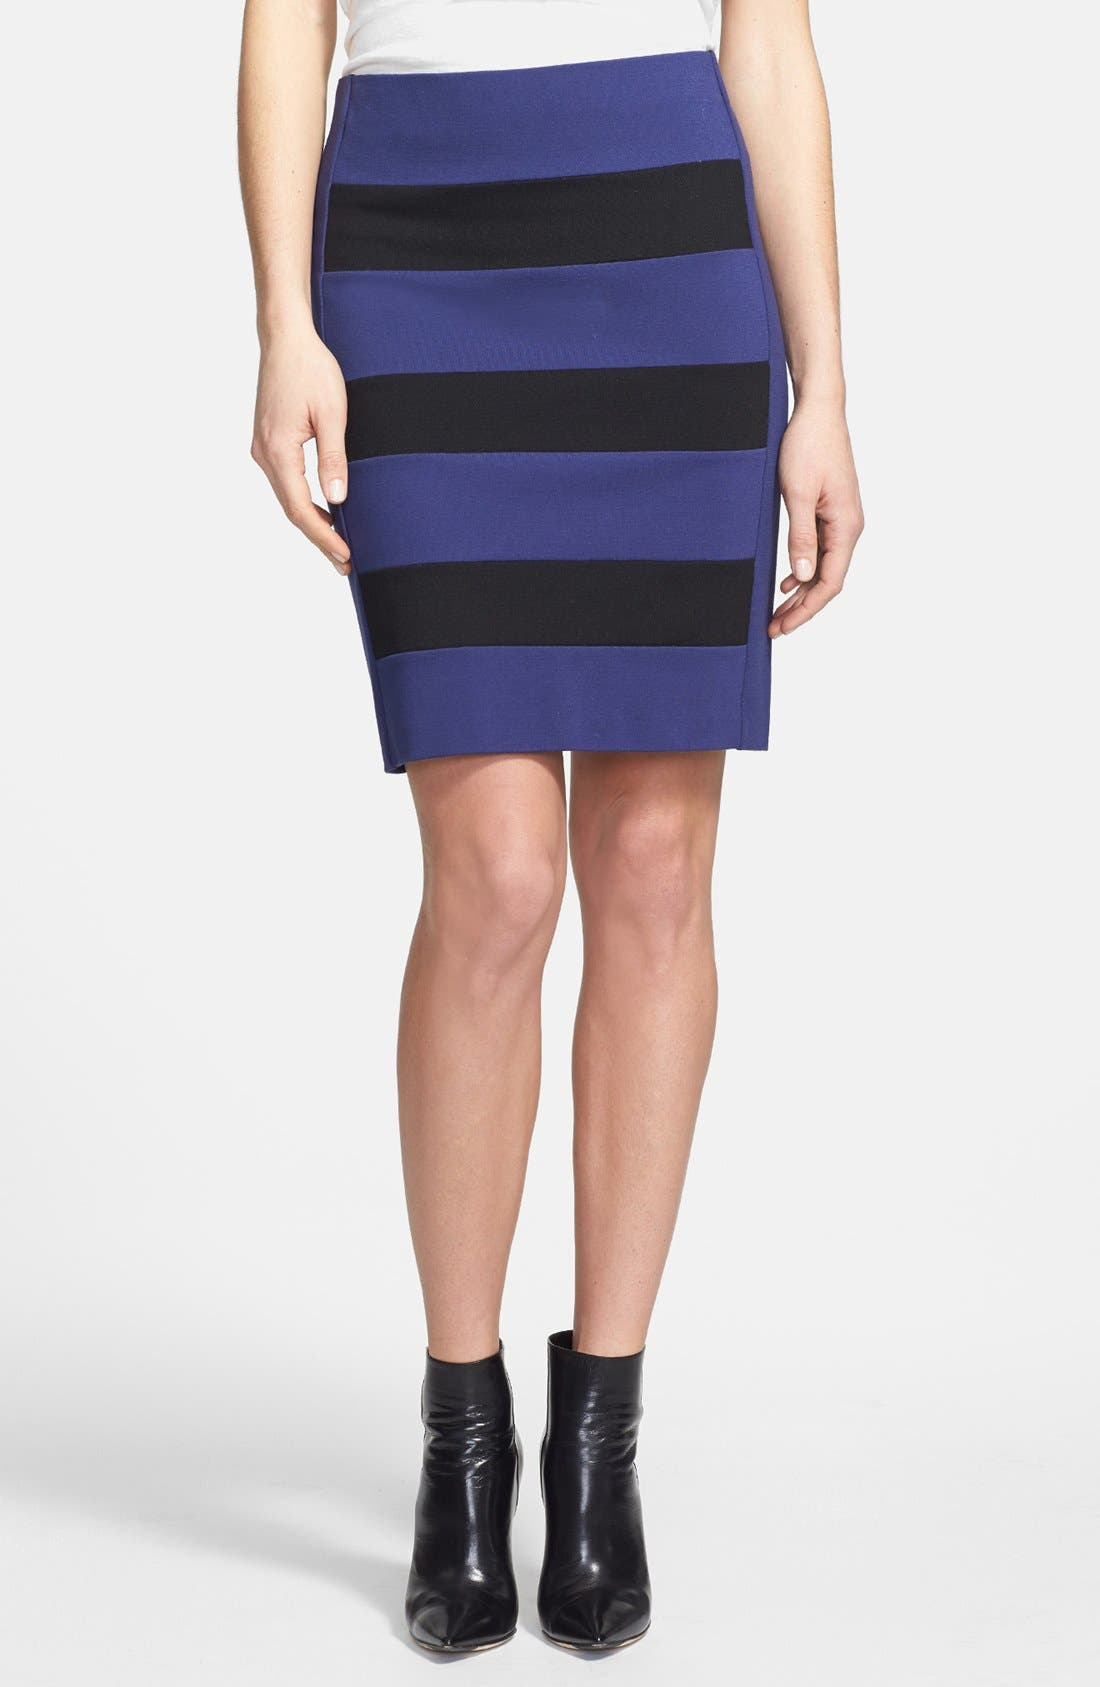 Alternate Image 1 Selected - DKNYC Colorblock Stretch Knit Skirt